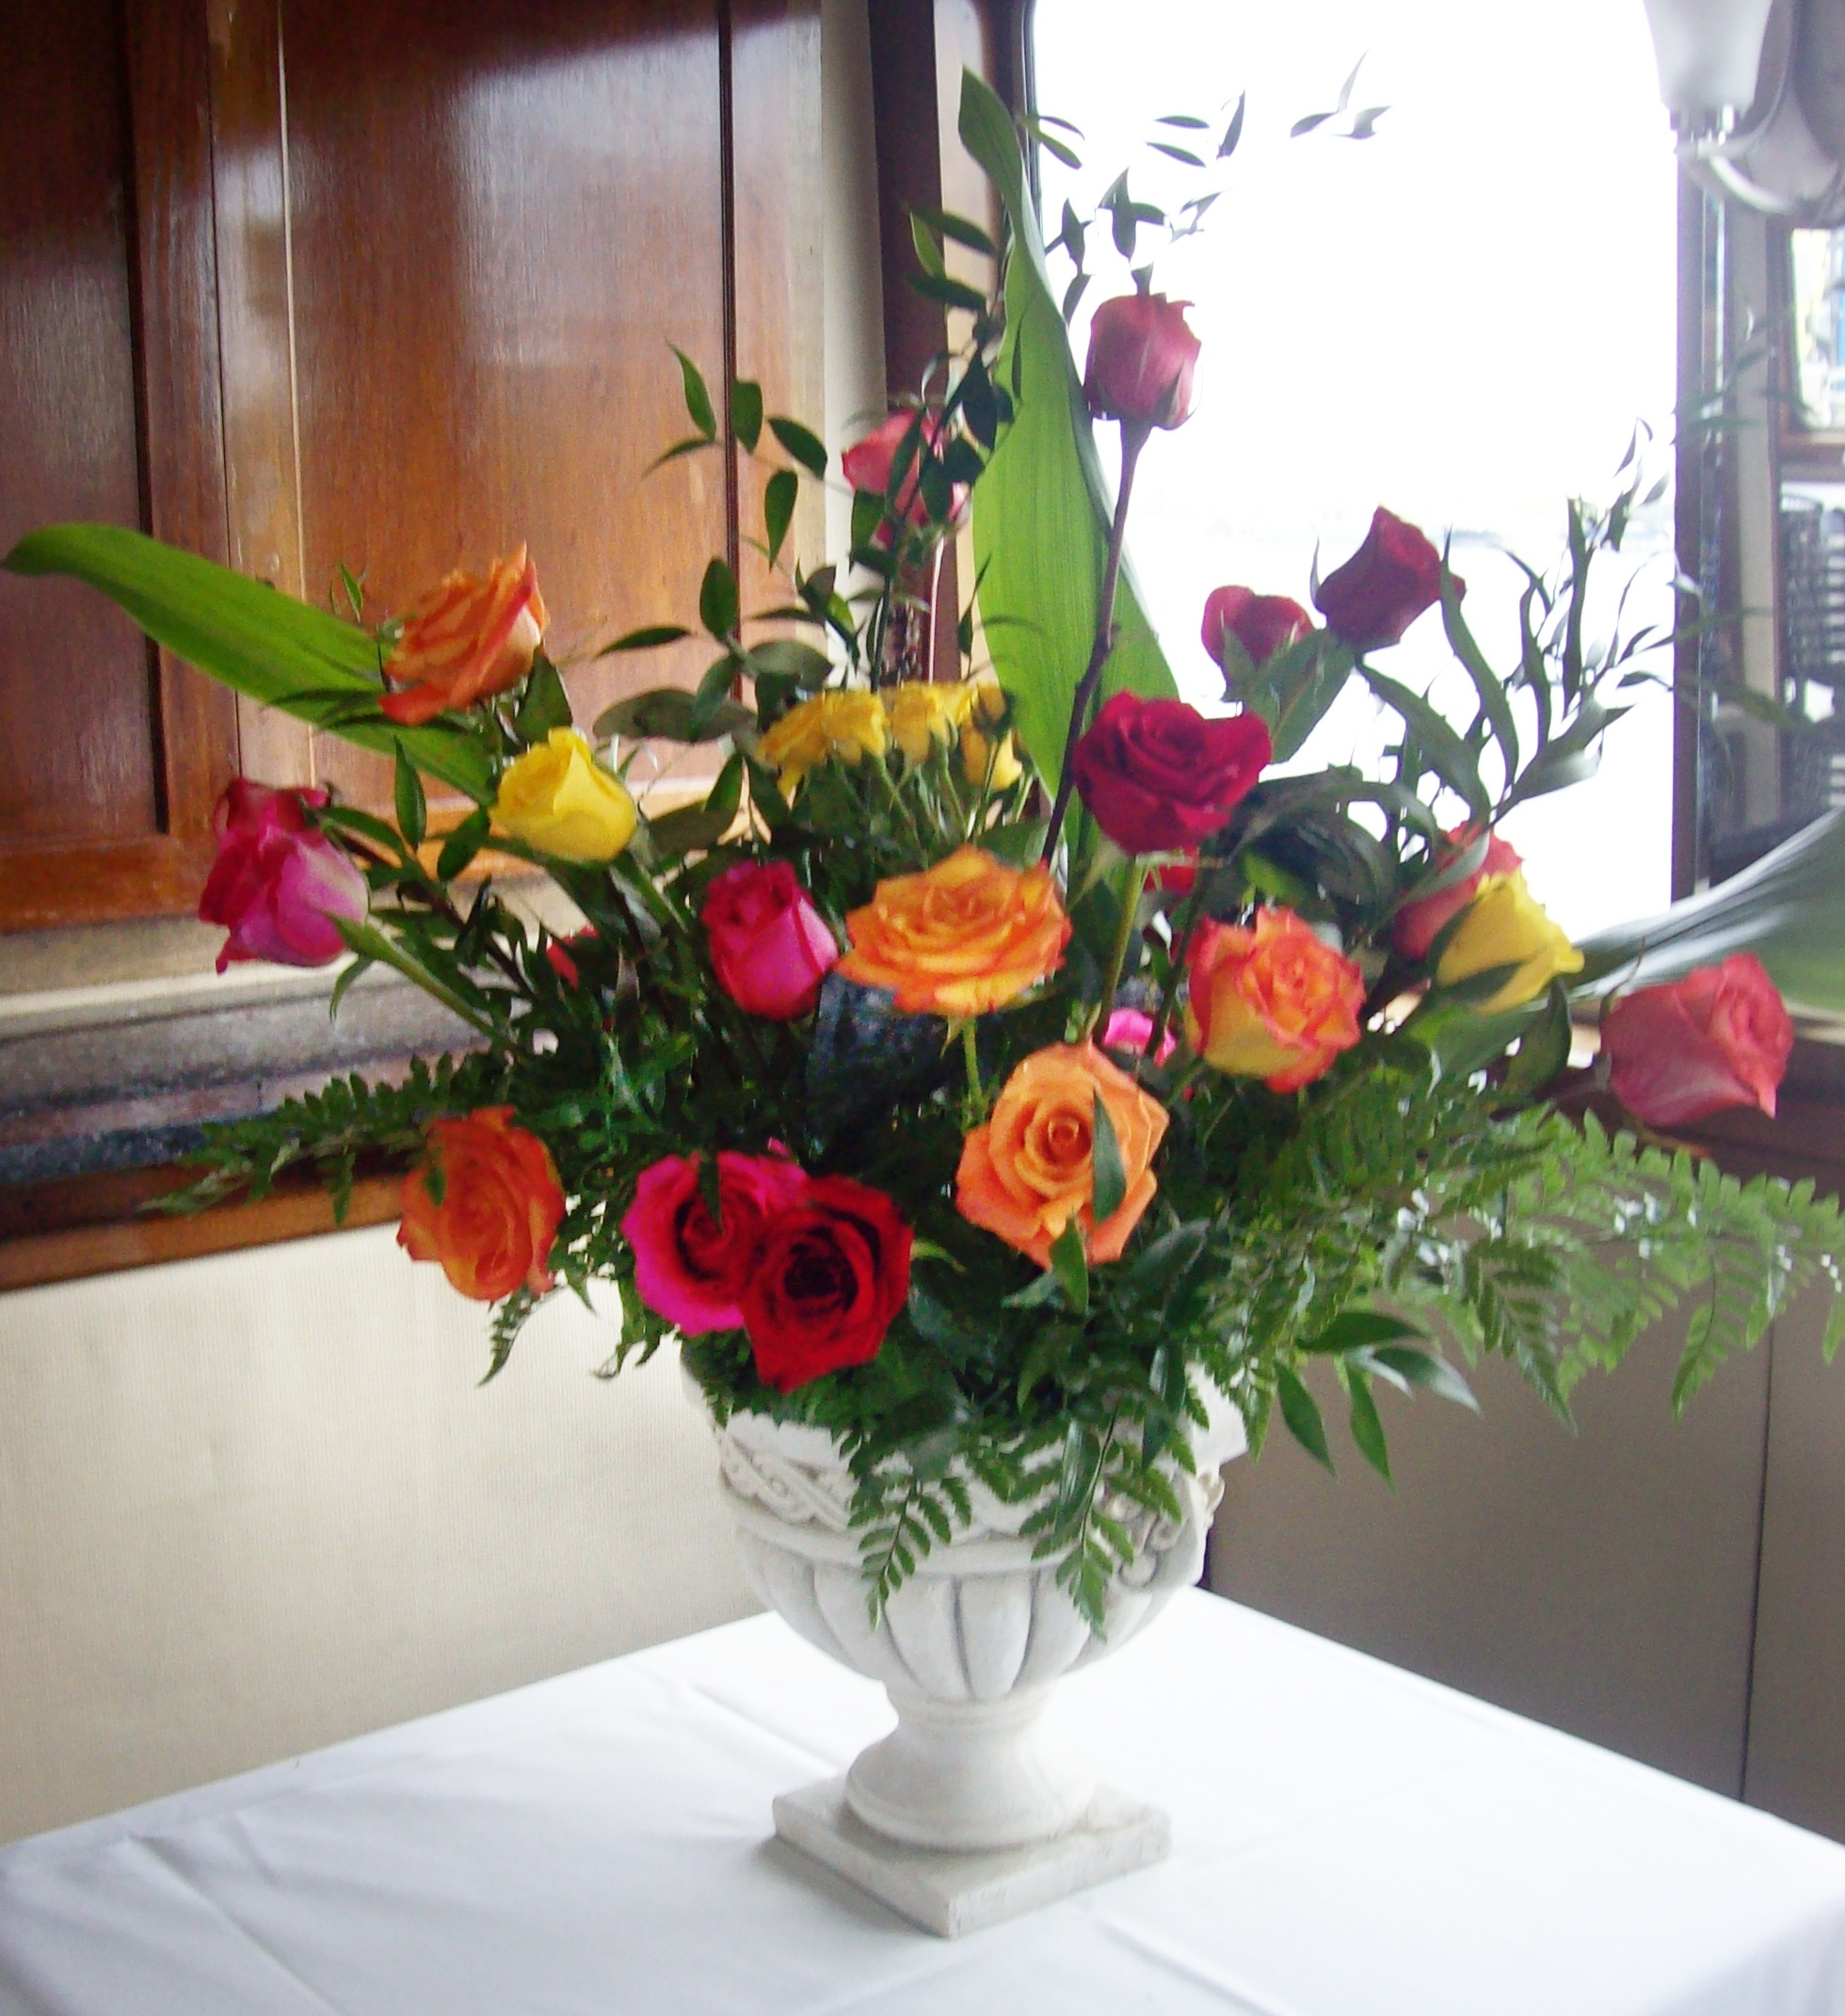 Rose Arrangement for Any Area